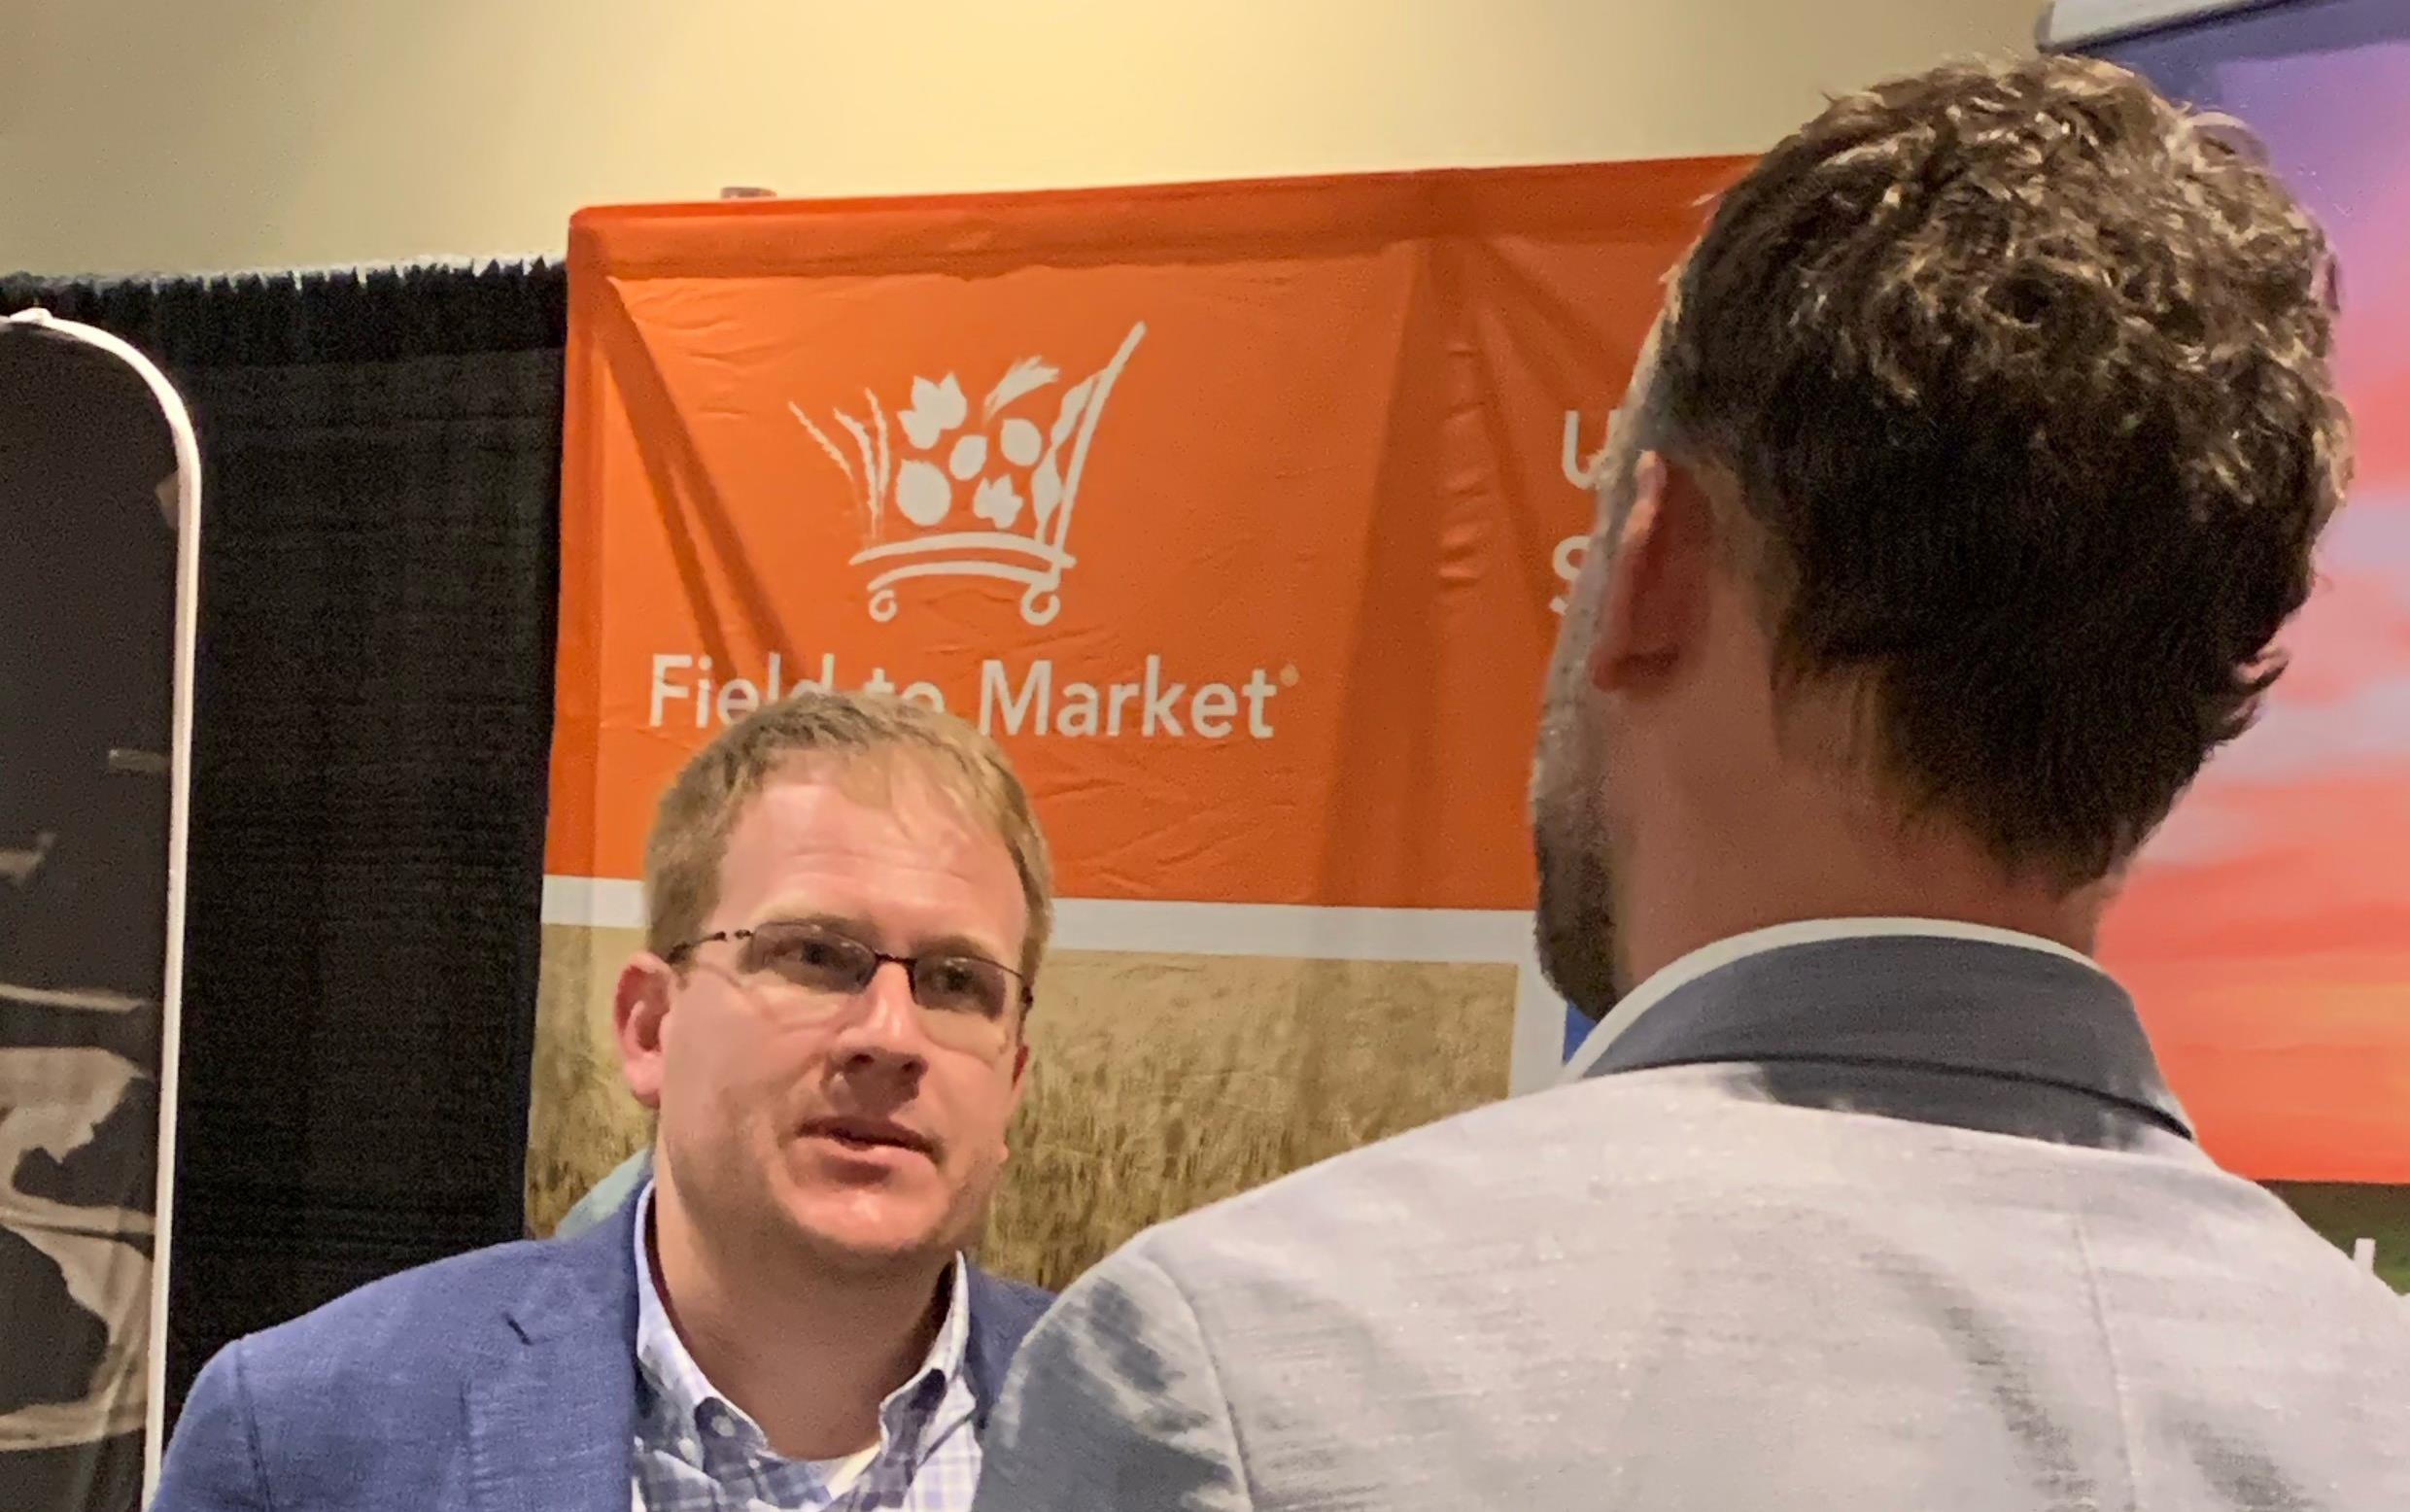 Two men stand in front of orange banner that reads: Field to Market